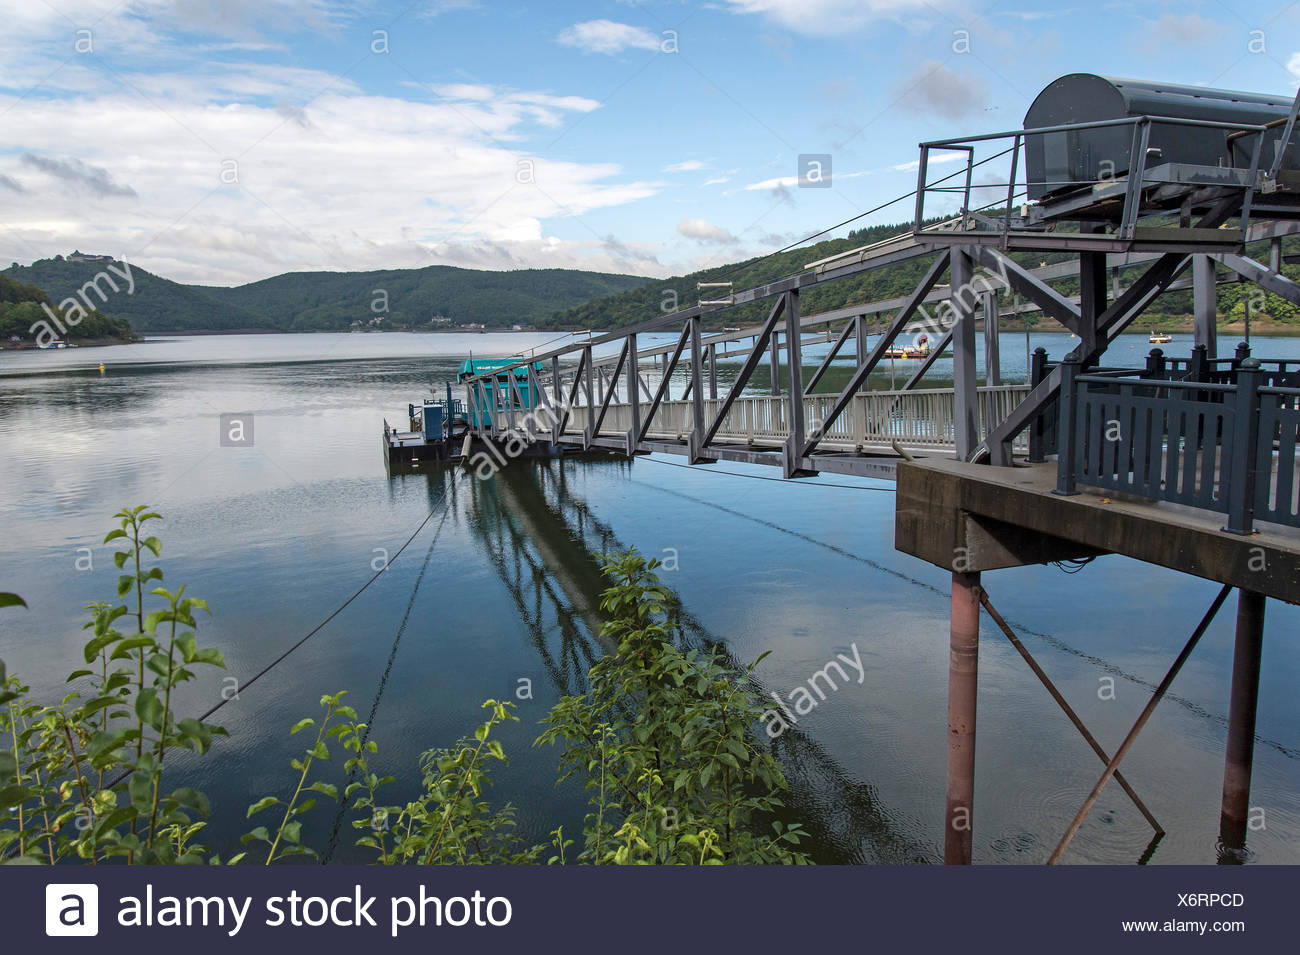 Jetty, pier, Edersee reservoir, Waldeck, Kellerwald National Park, North Hesse, Hesse - Stock Image